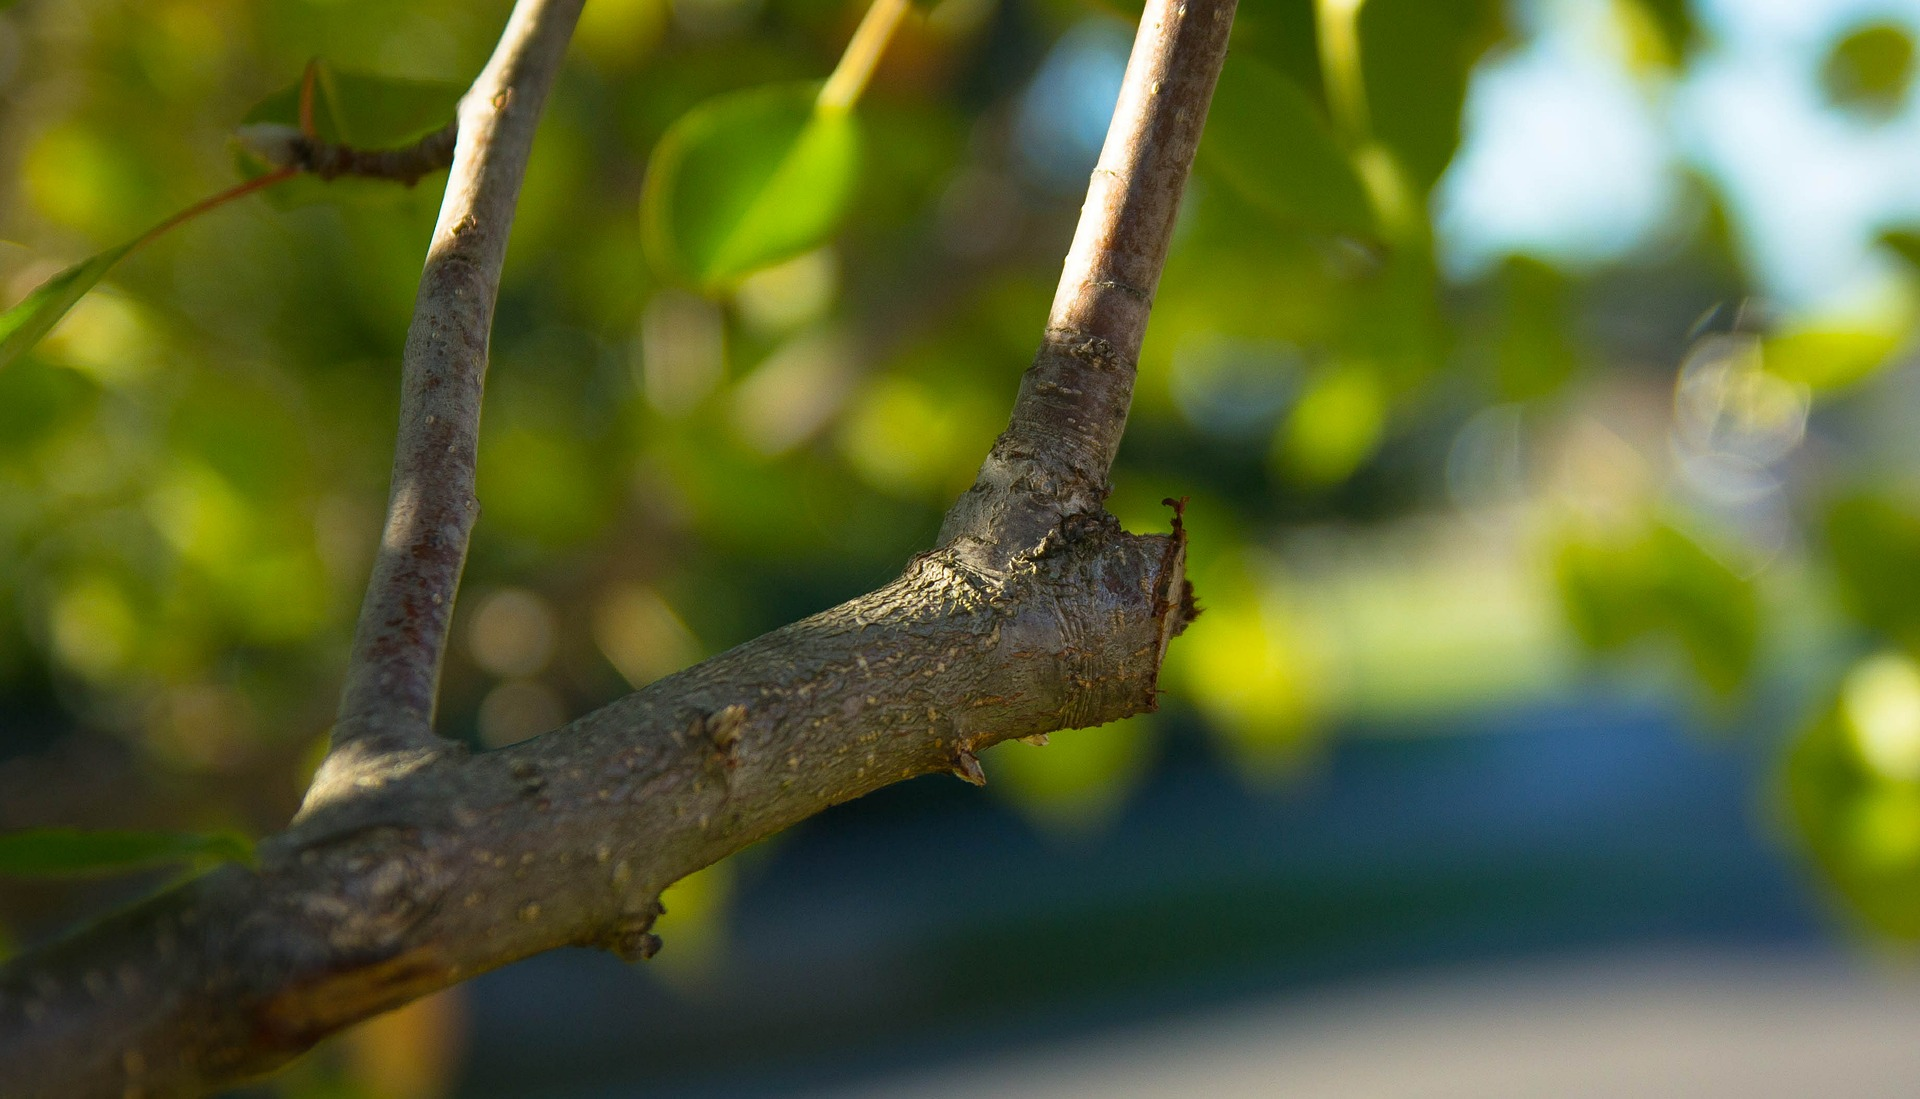 Newly pruned branch of a peach tree.